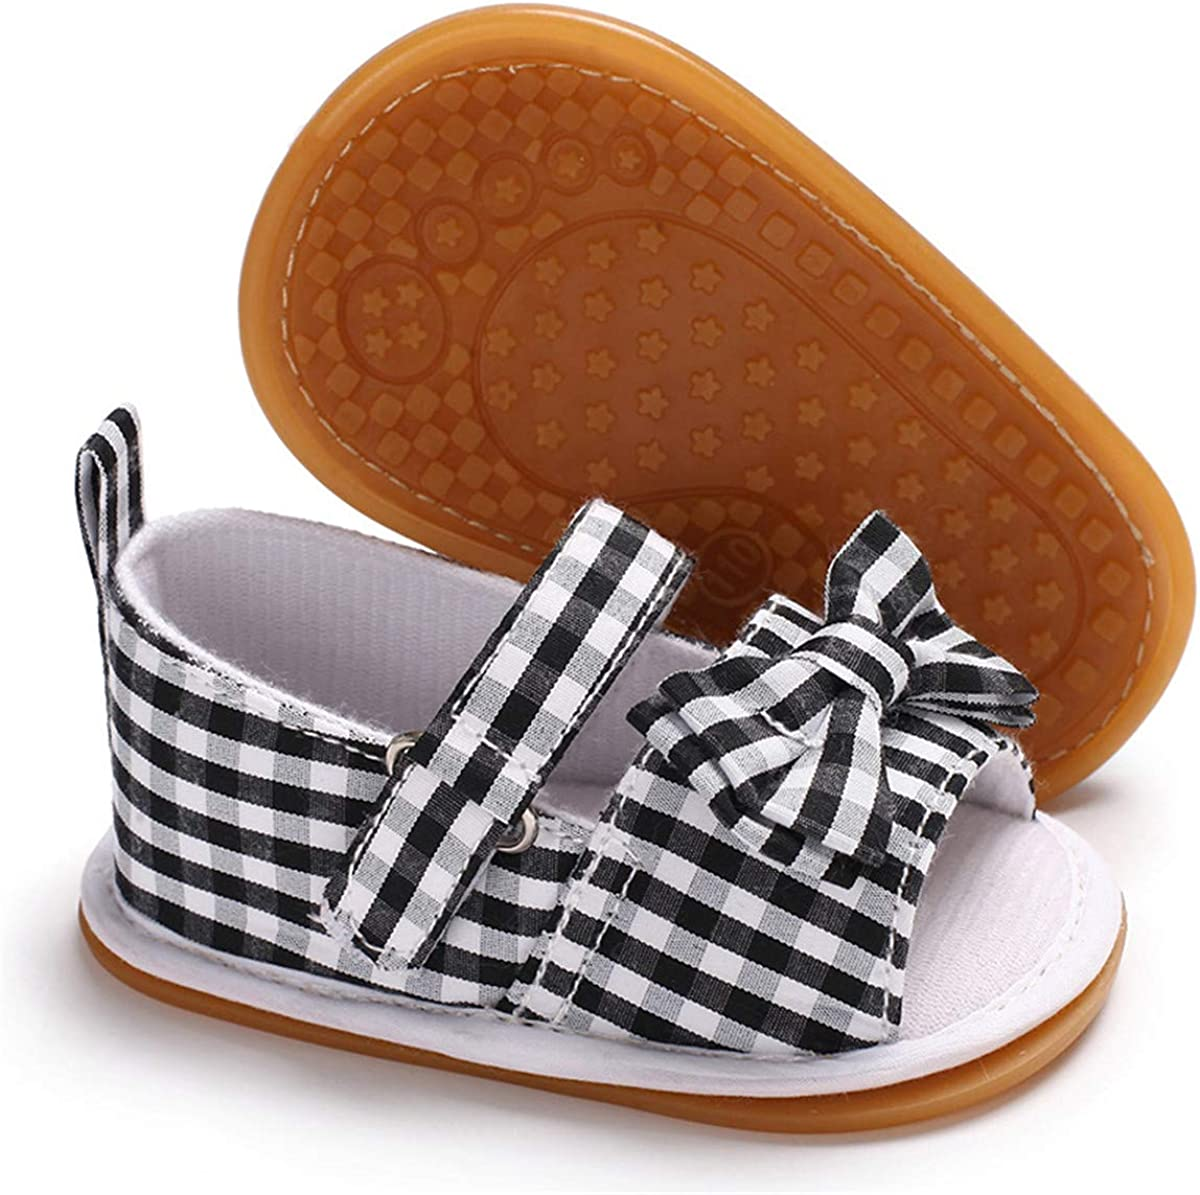 Max 76% OFF ENERCAKE Infant Baby Ranking TOP15 Girls Sandals Rubber Summ Soft Sole Bowknot